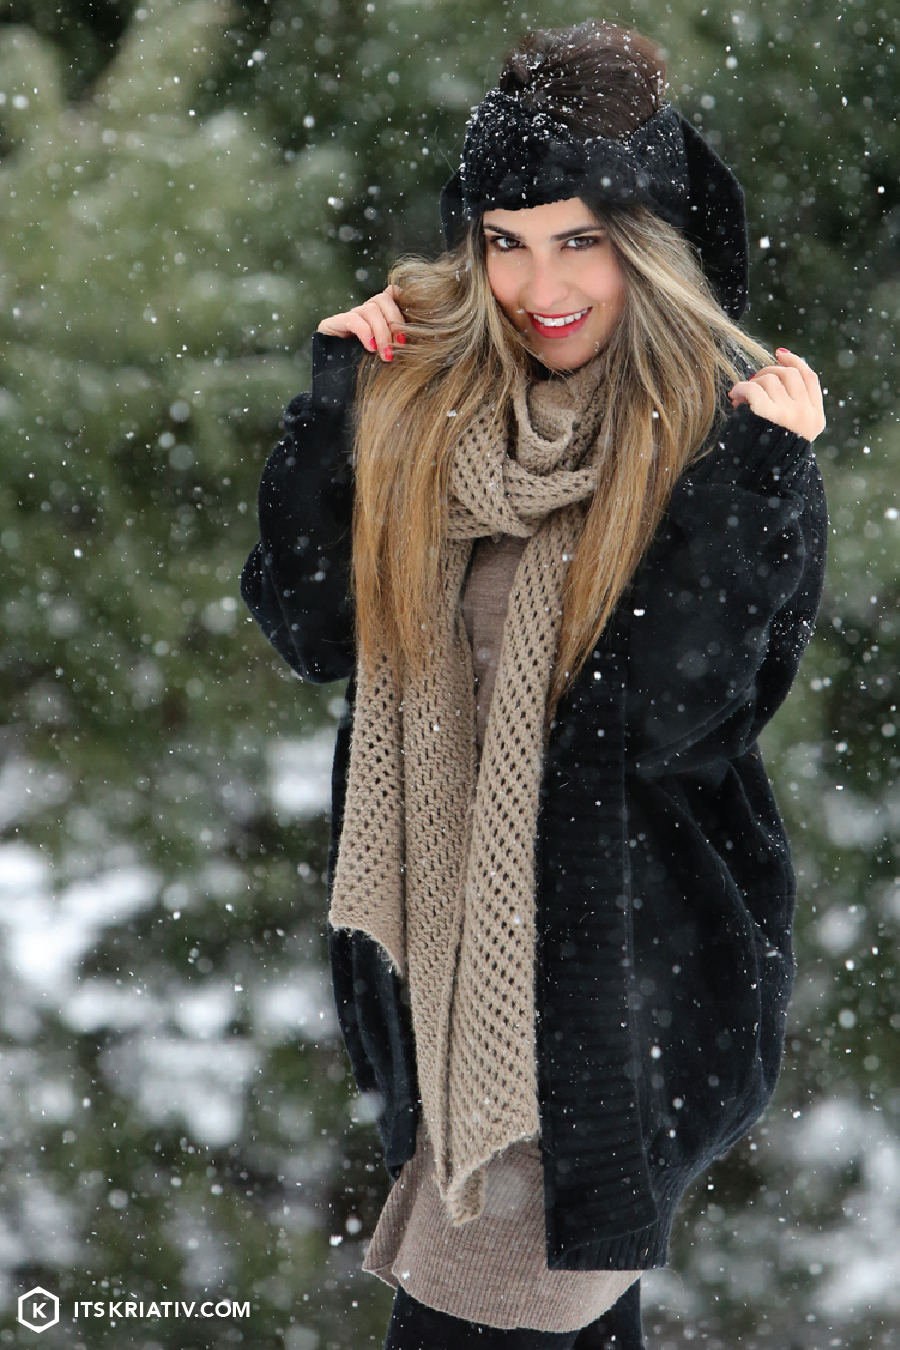 Its-Kriativ-Fashion-Let-It-Snow-Winter-03.jpg